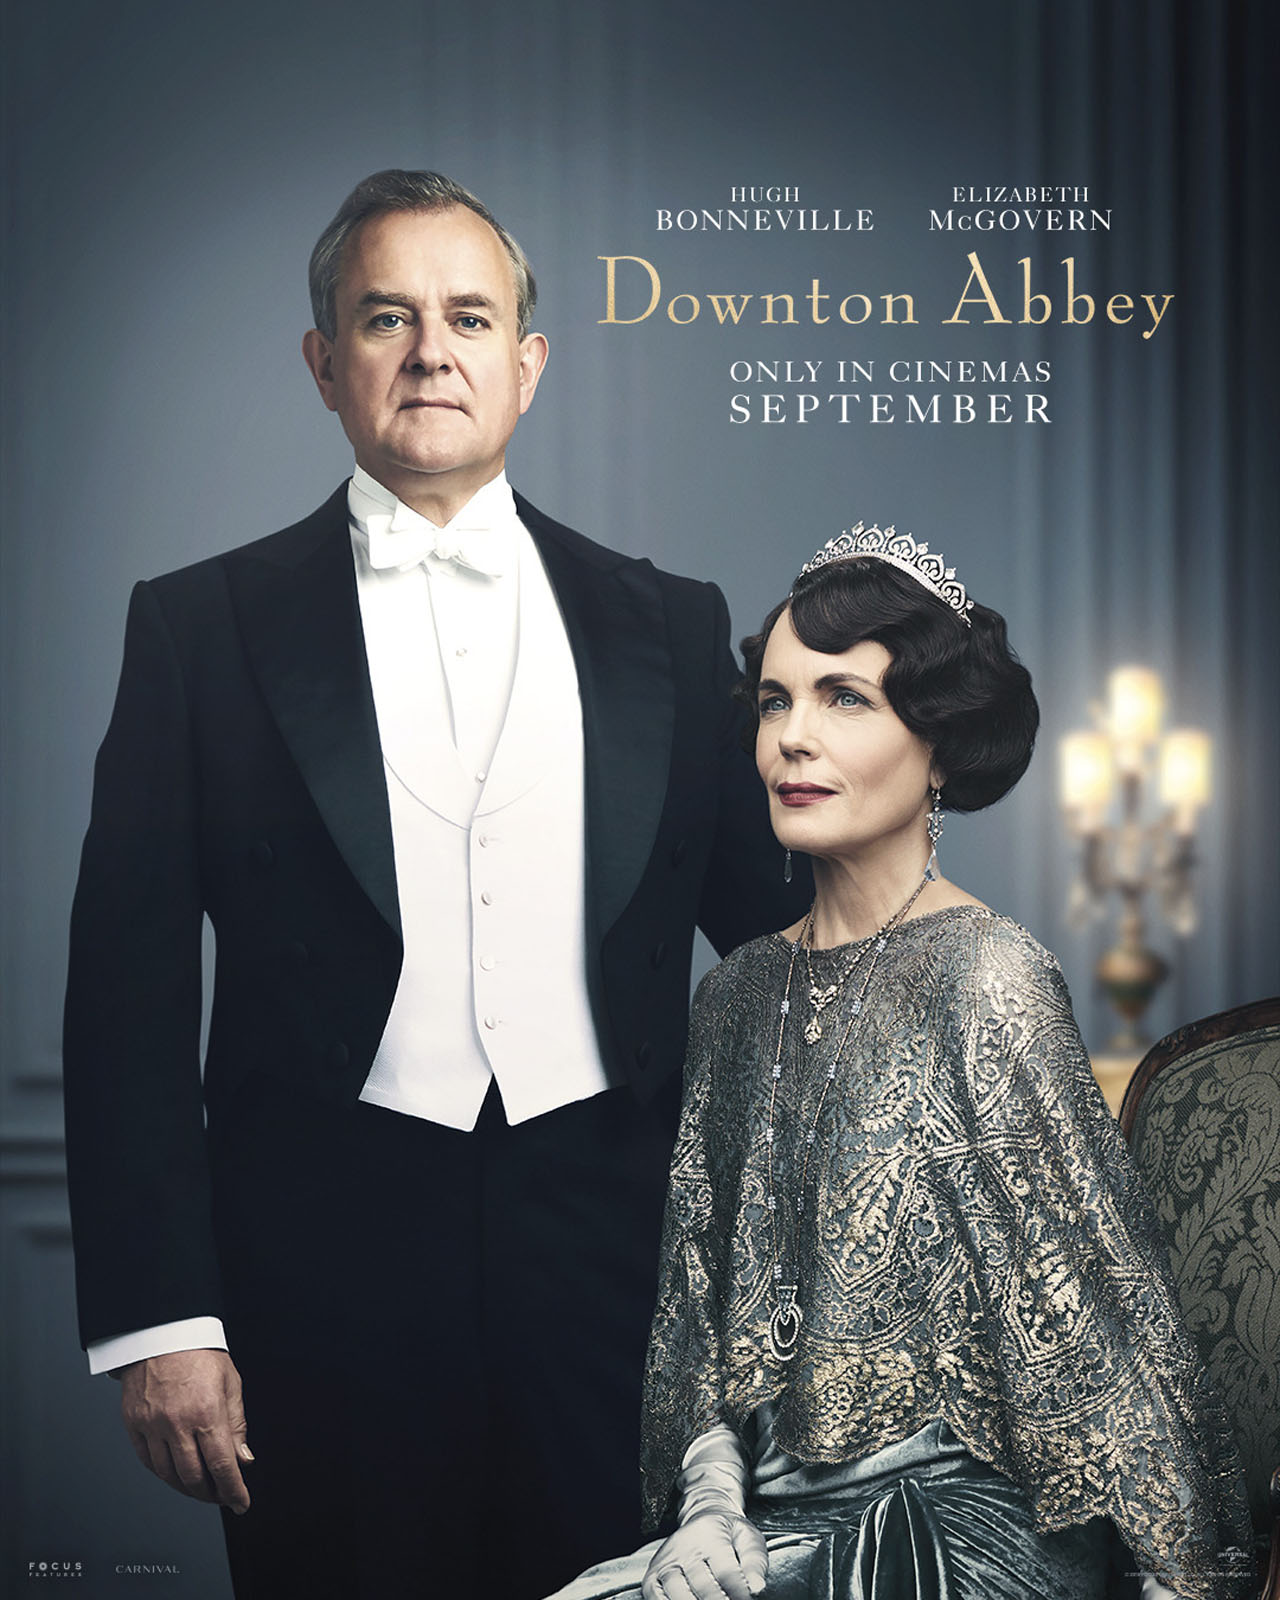 Downton Abbey The Movie Character Posters Robert and Cora Crawley